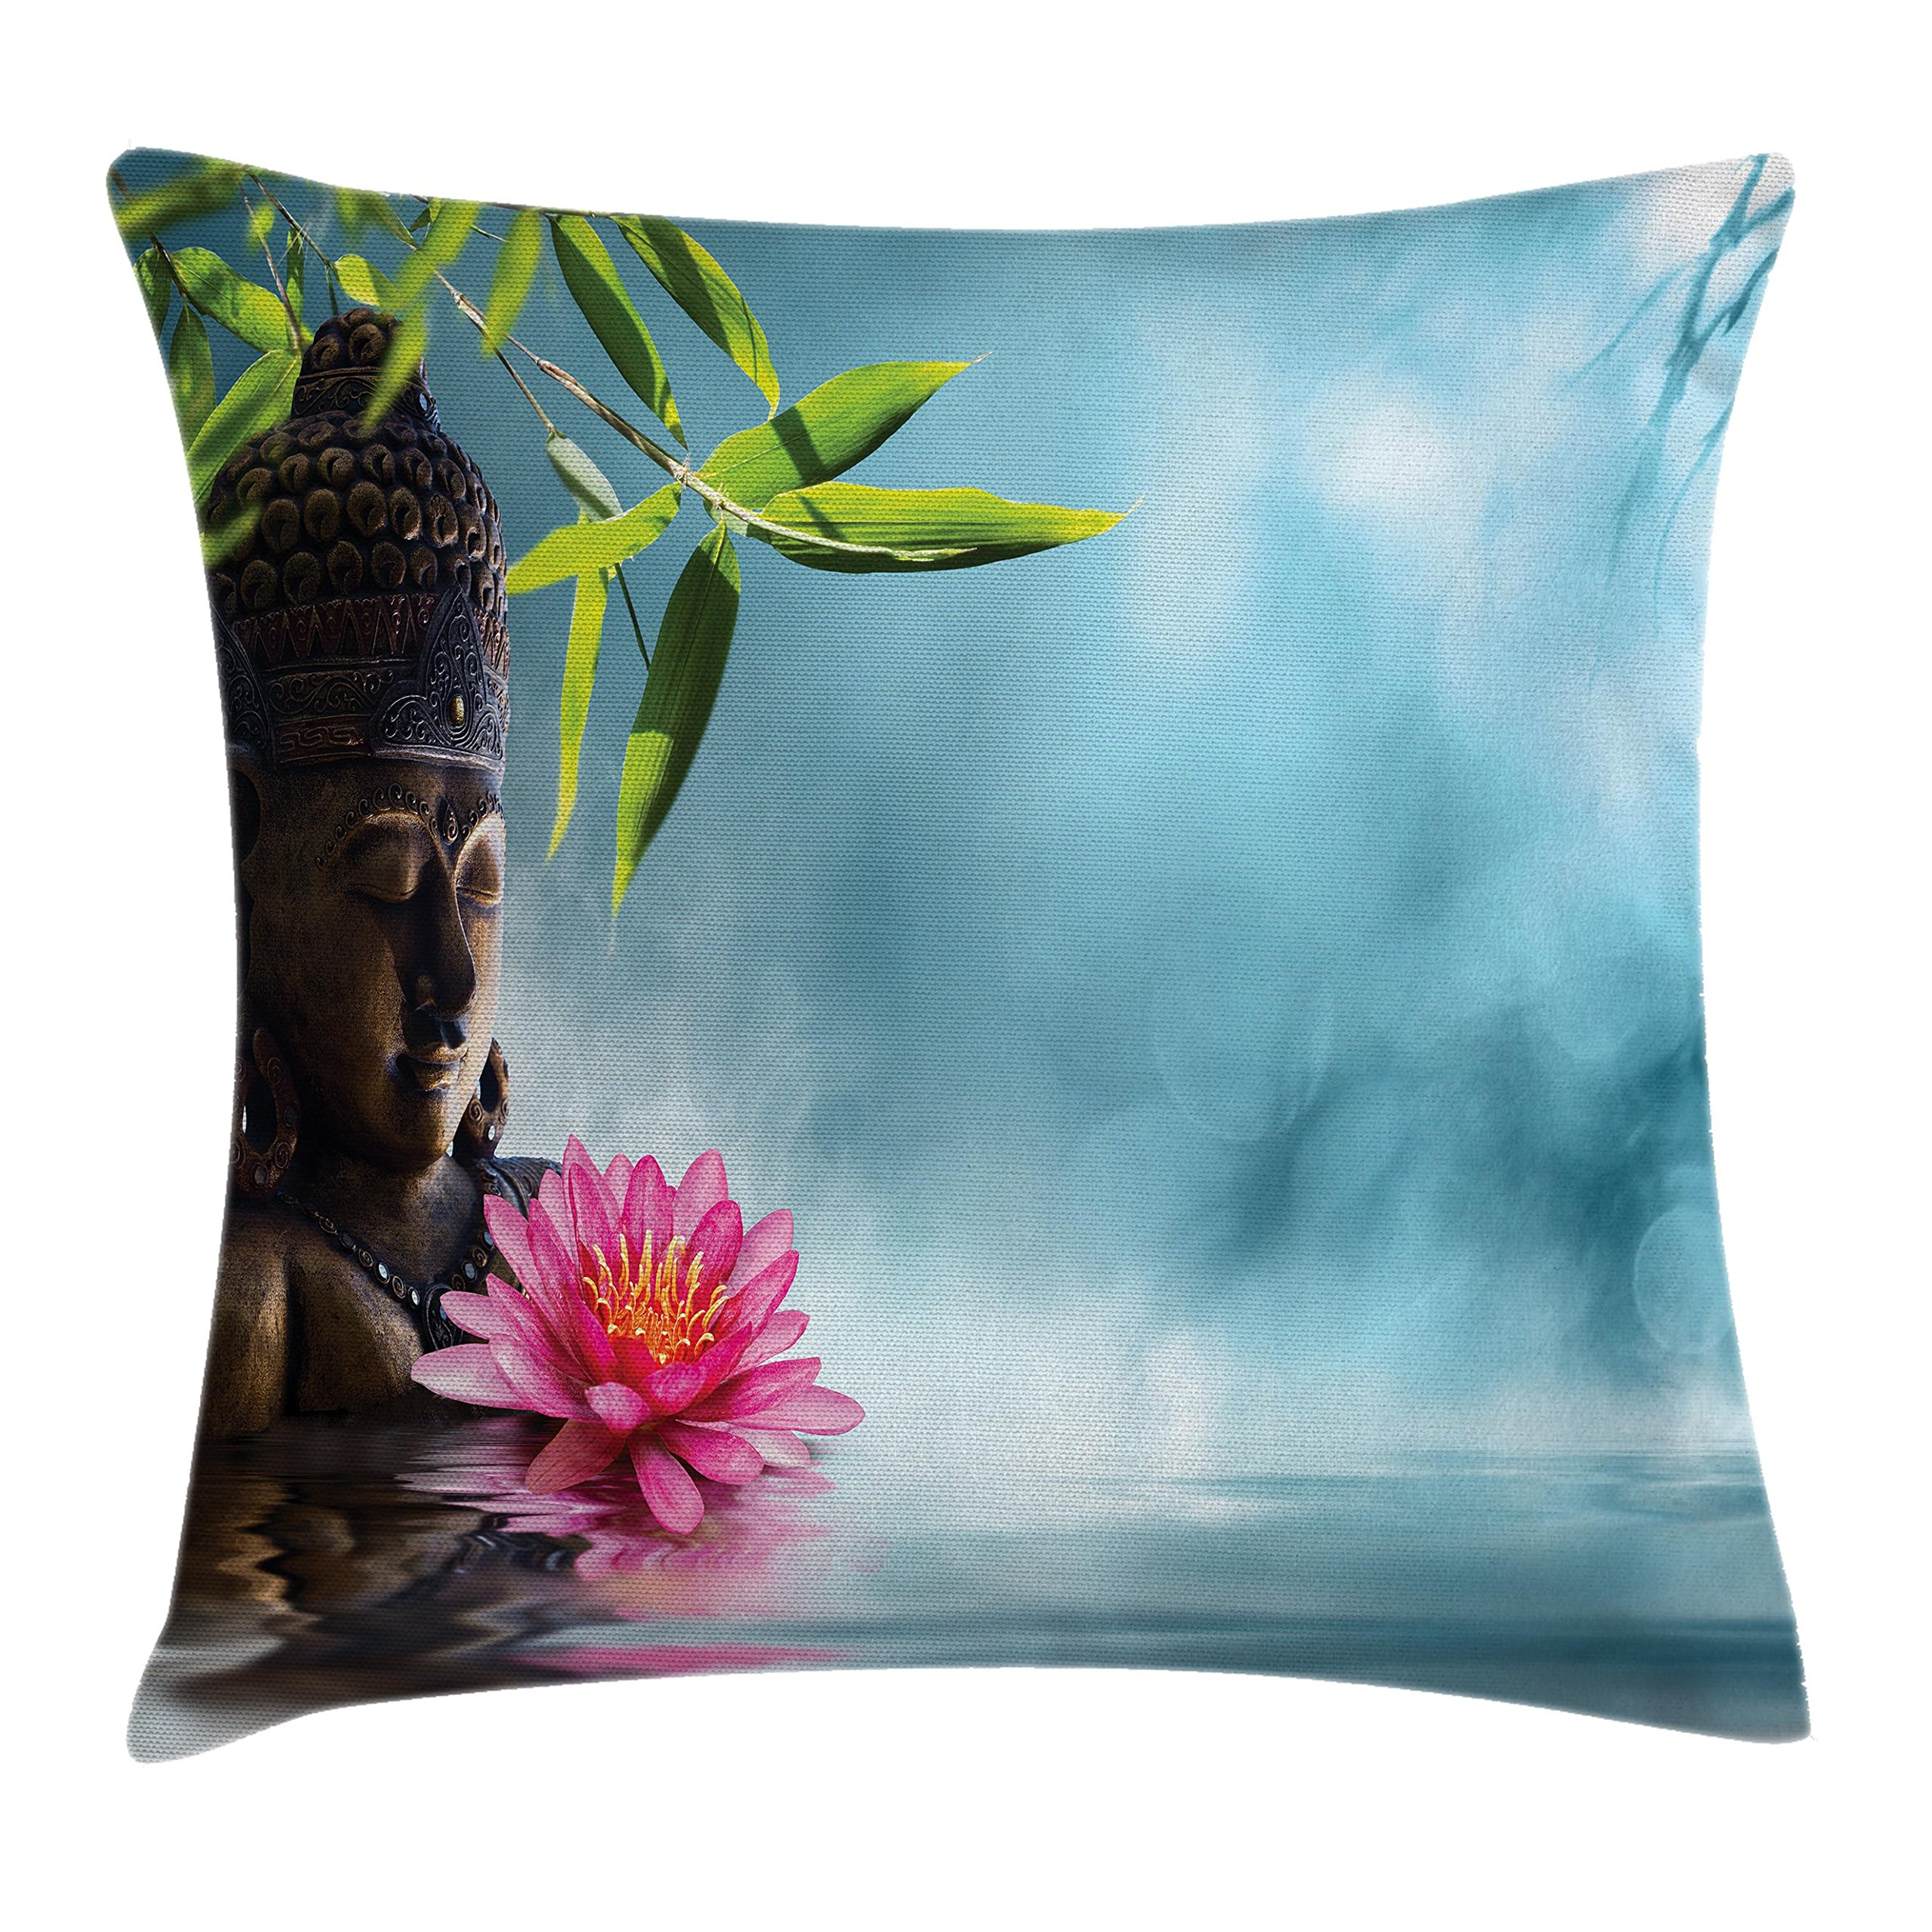 Ambesonne Zen Throw Pillow Cushion Cover, Zen Waterlillies Spa Theme Meditation Nature Feng Shui Natural Calm Water, Decorative Square Accent Pillow Case, 16 X 16 Inches, Light Blue Green Pink